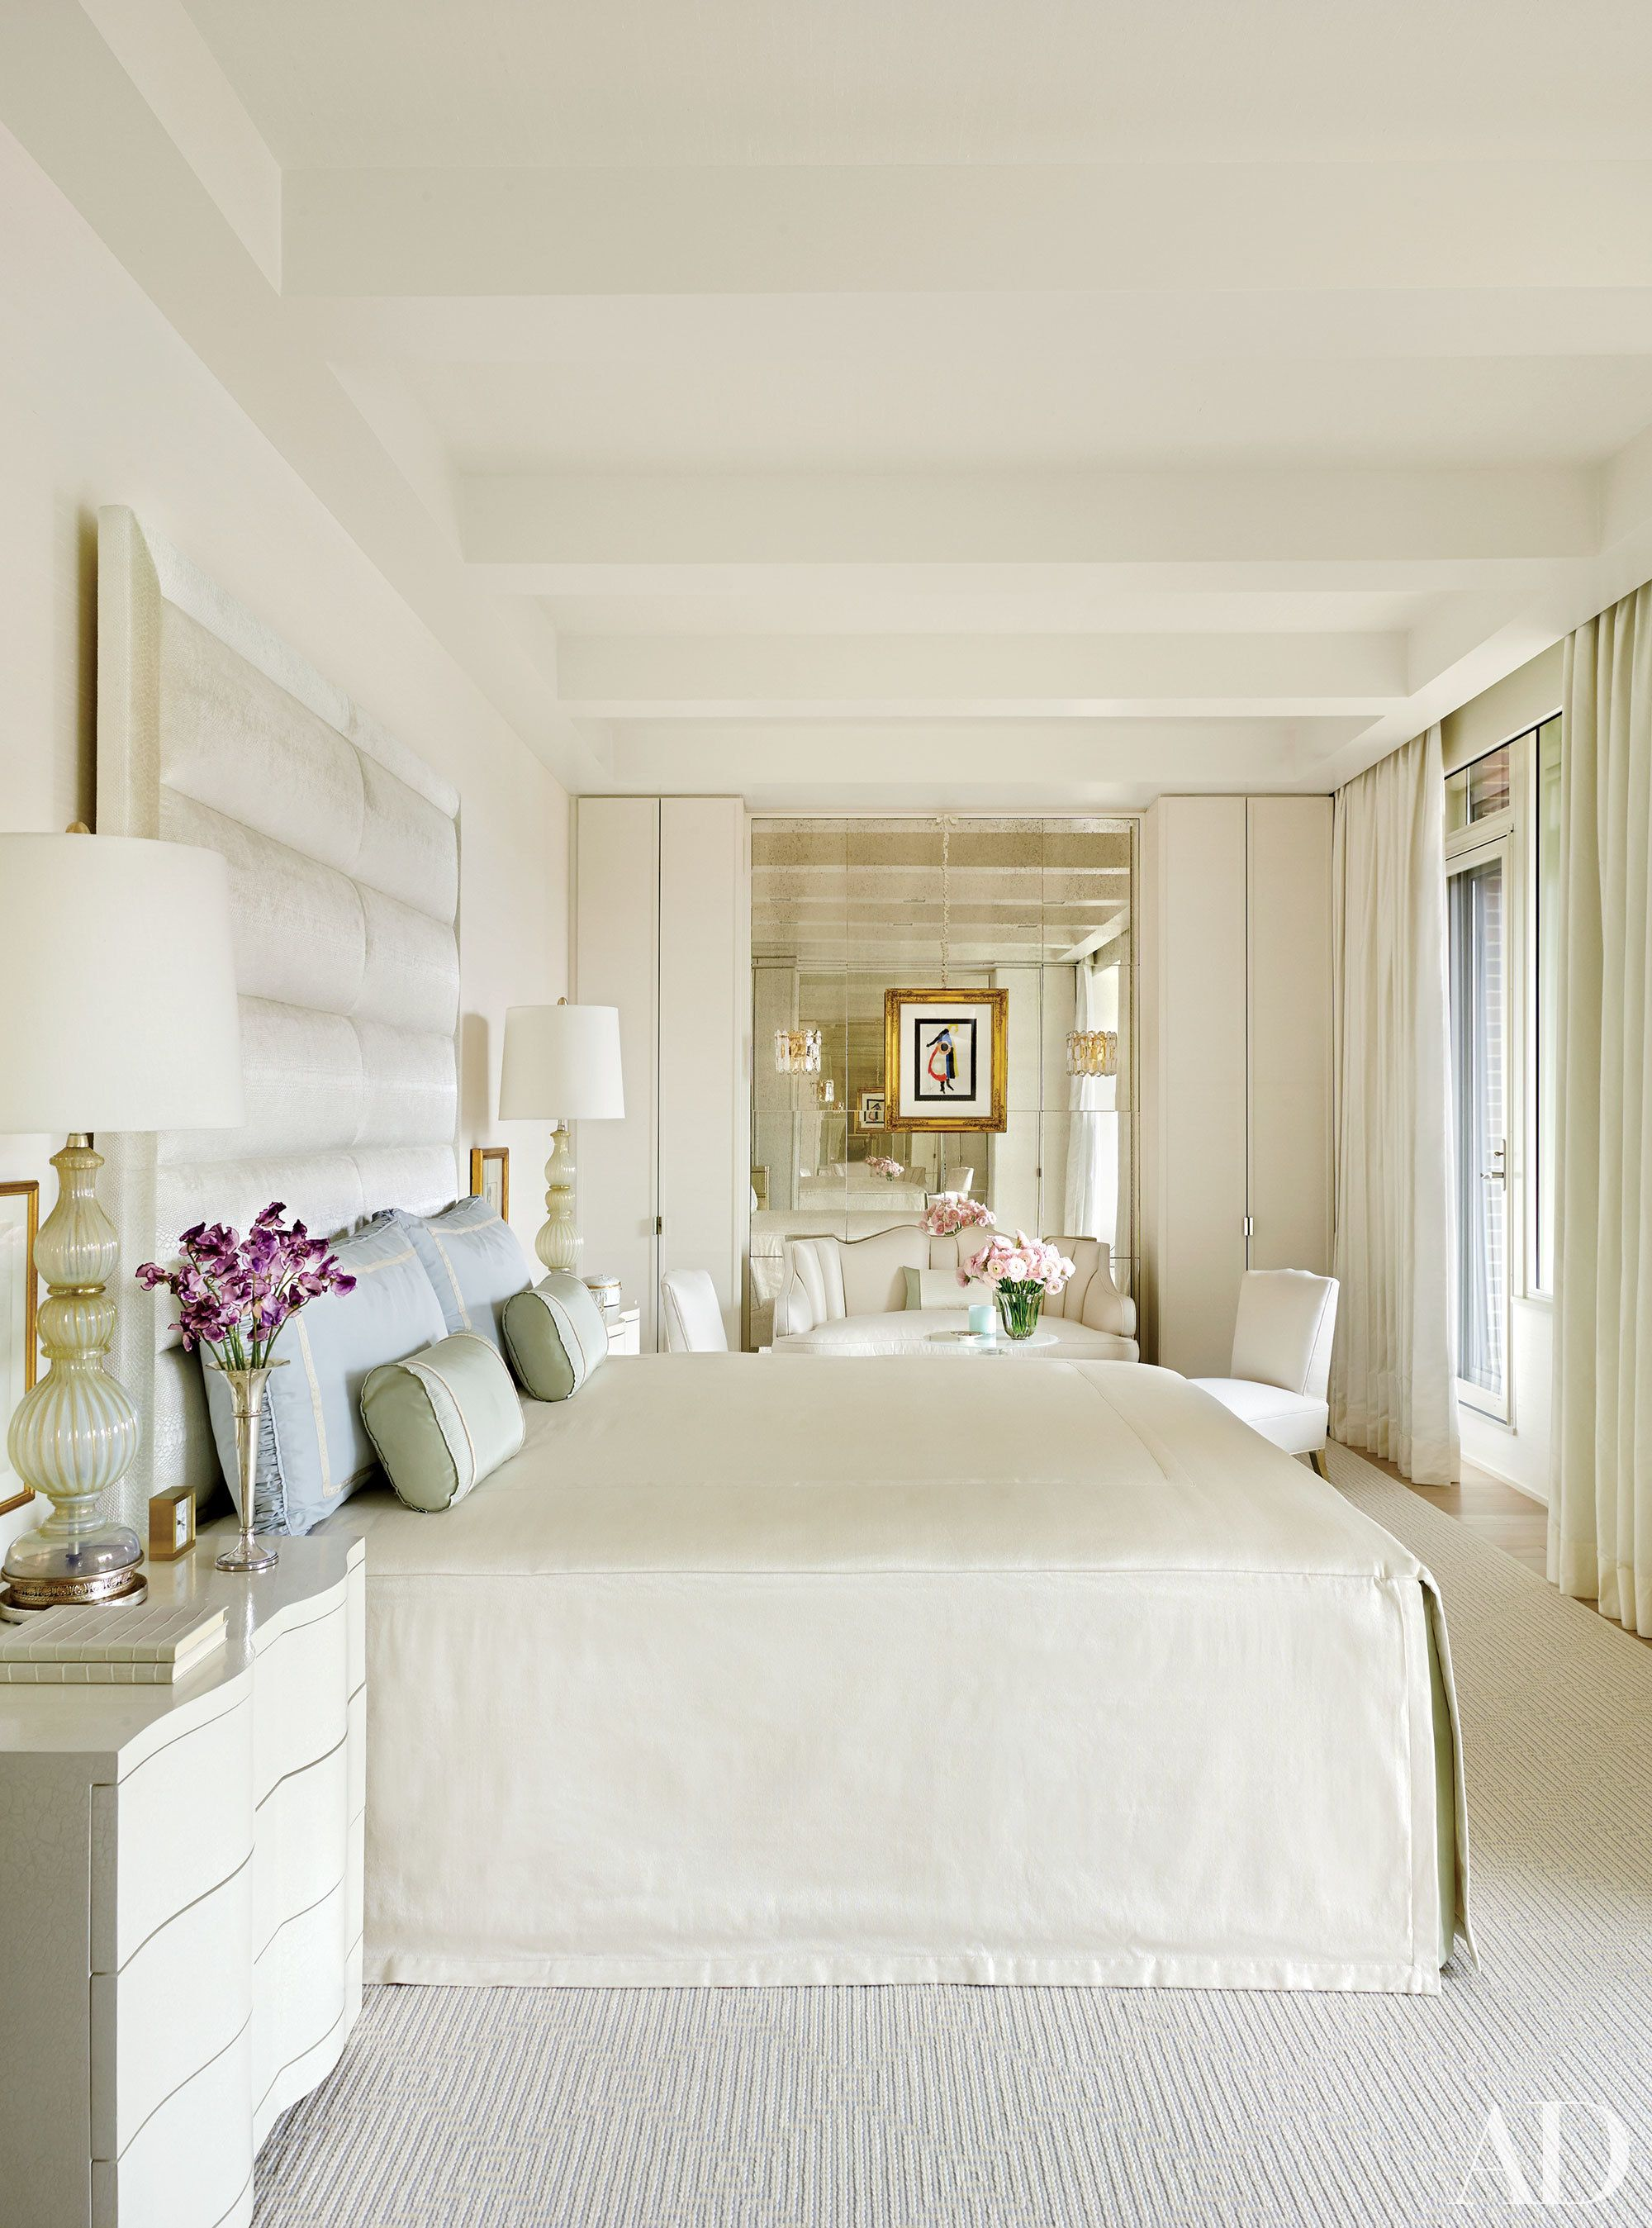 See 11 Incredible Bedroom Transformations